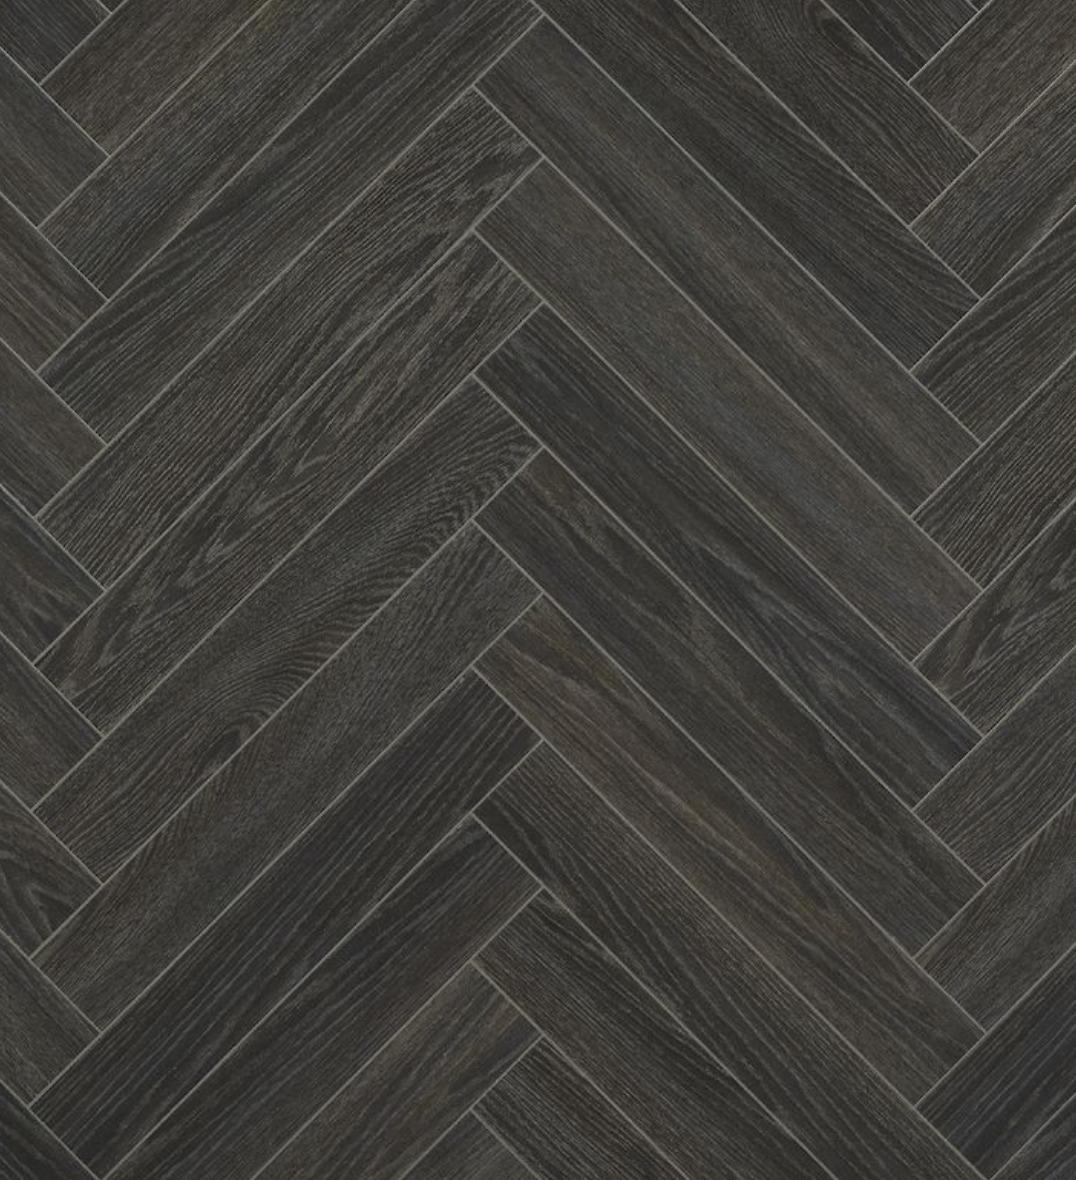 berry alloc chateau charme black parquet herringbone laminate flooring. Black Bedroom Furniture Sets. Home Design Ideas